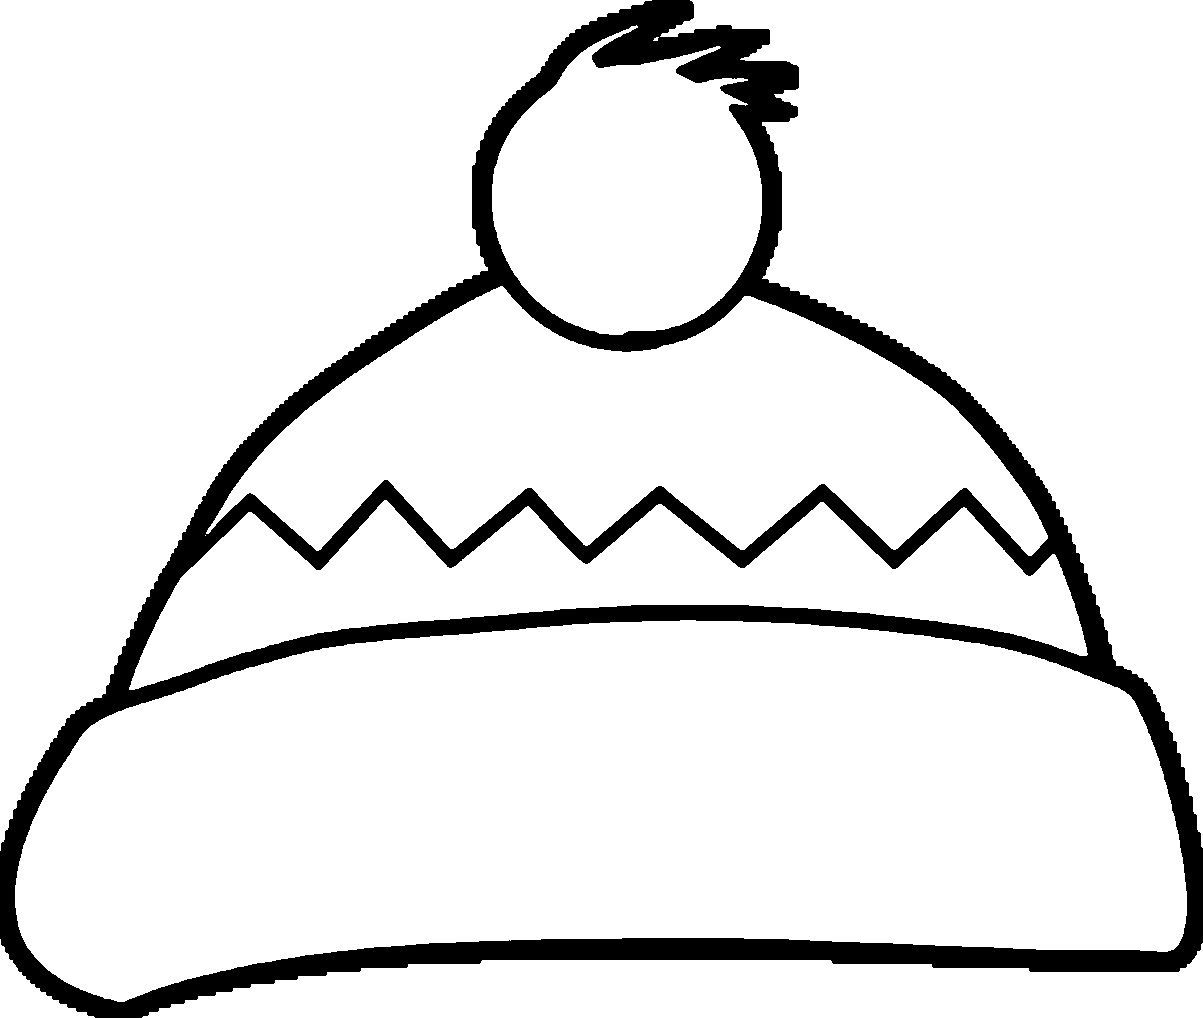 winter hat coloring page winter hat coloring pages at getcoloringscom free page winter hat coloring